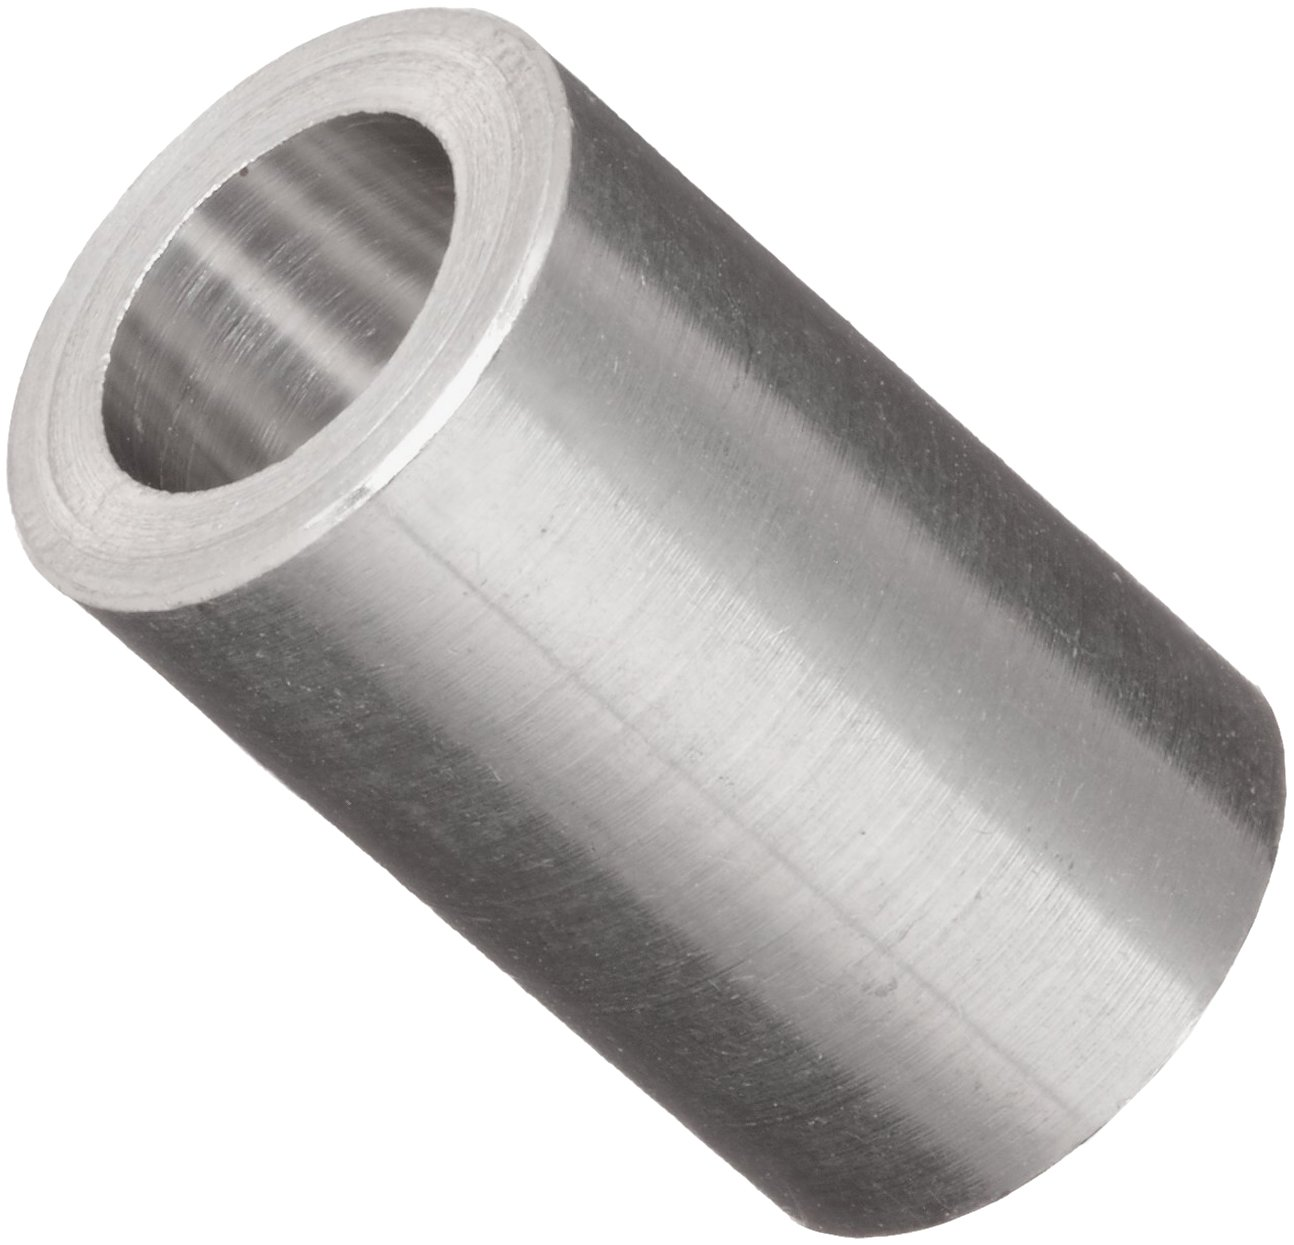 Round Spacer, 2011 Aluminum, Plain Finish, #10 Screw Size, 1/2'' Length (Pack of 25)